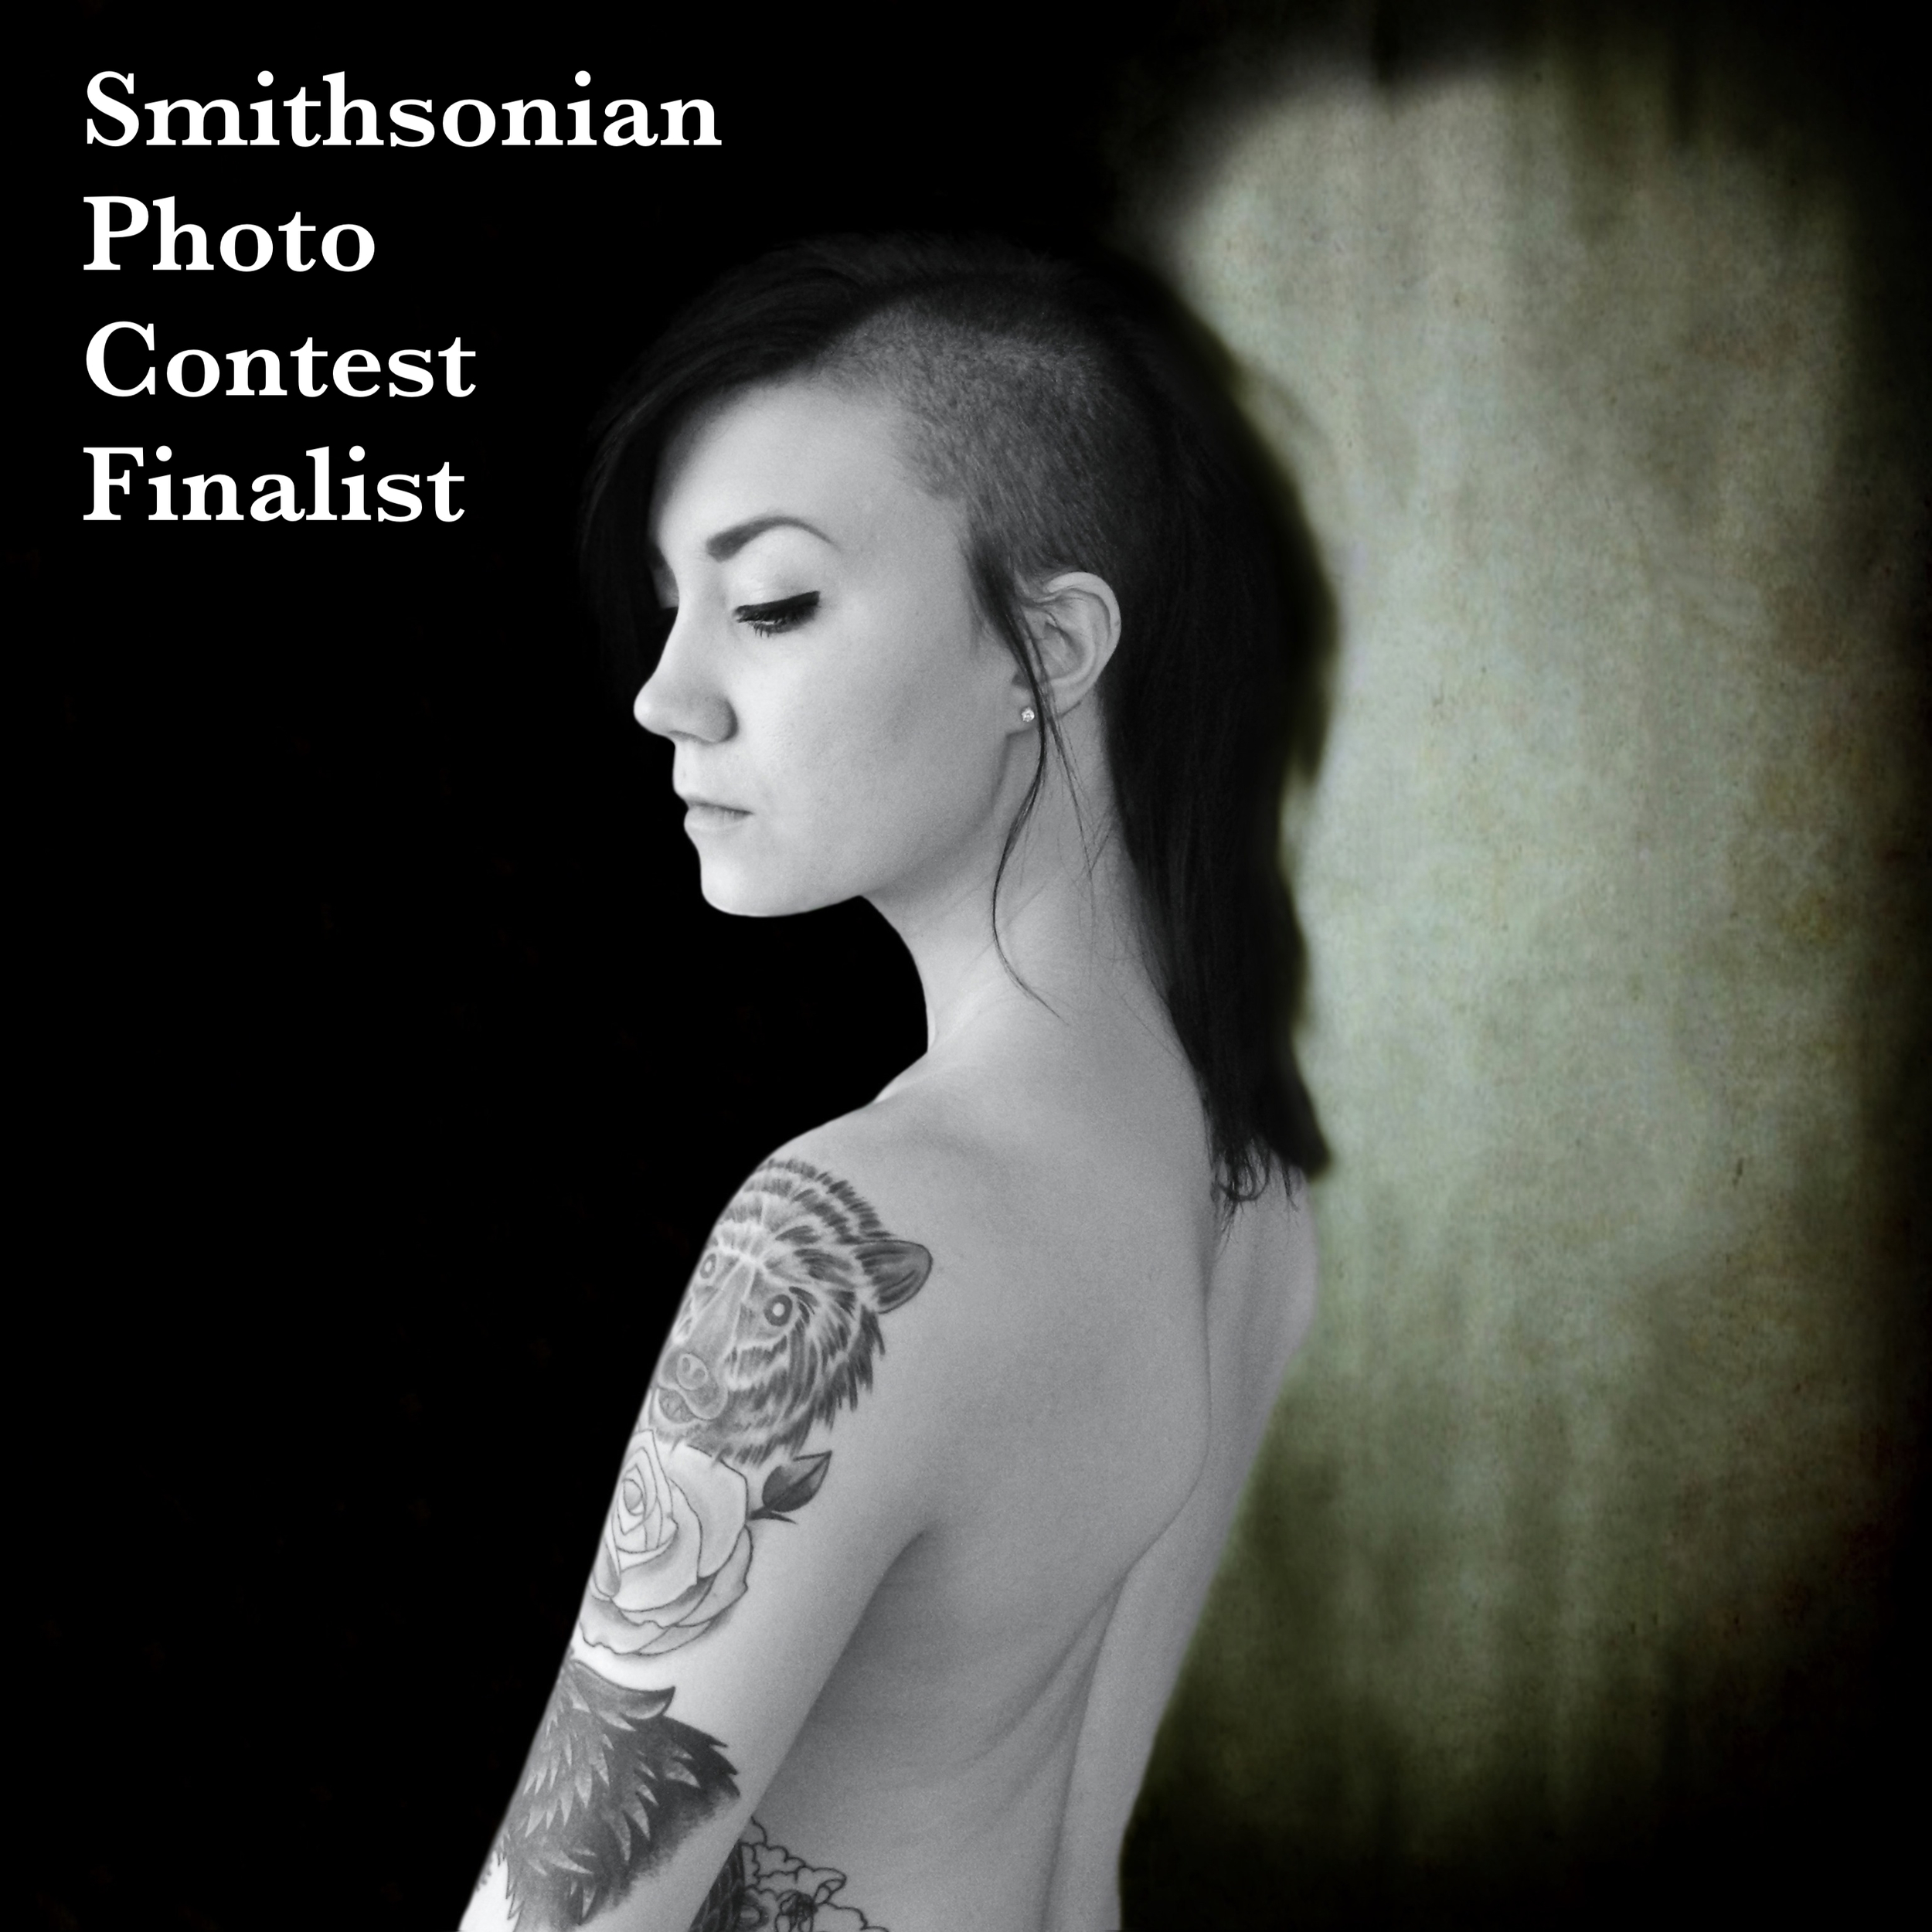 "My Photo ""Tasha"" was selected as one of 60 finalists out of over 50,000 in the 11th annual Smithsonian photo contest. I didn't win but am honored to have been selected out of so many entries. Use this link to see all the finalists and winners."